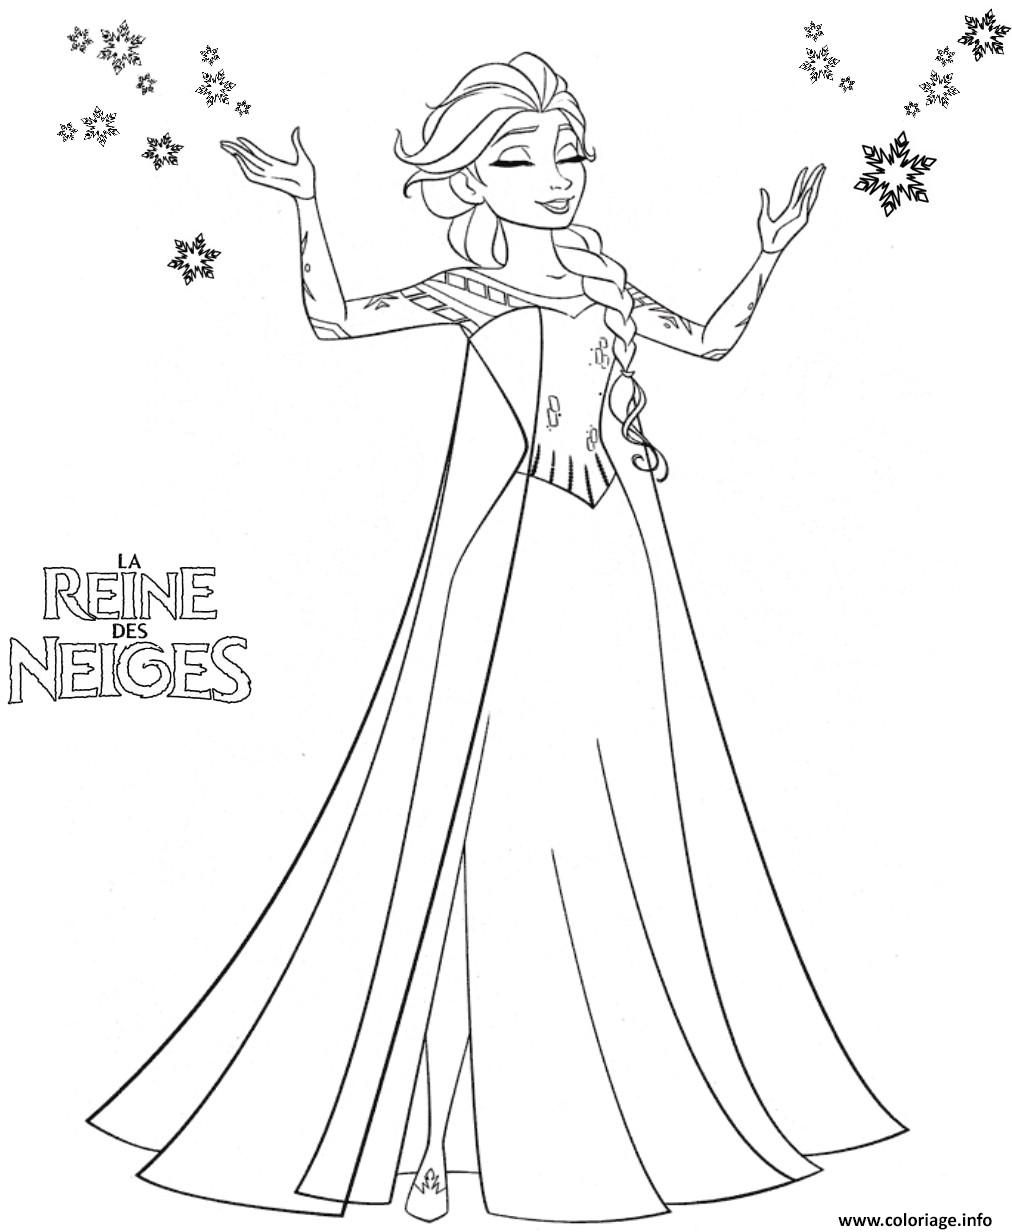 Coloriage princesse elsa - Coloriages princesse ...